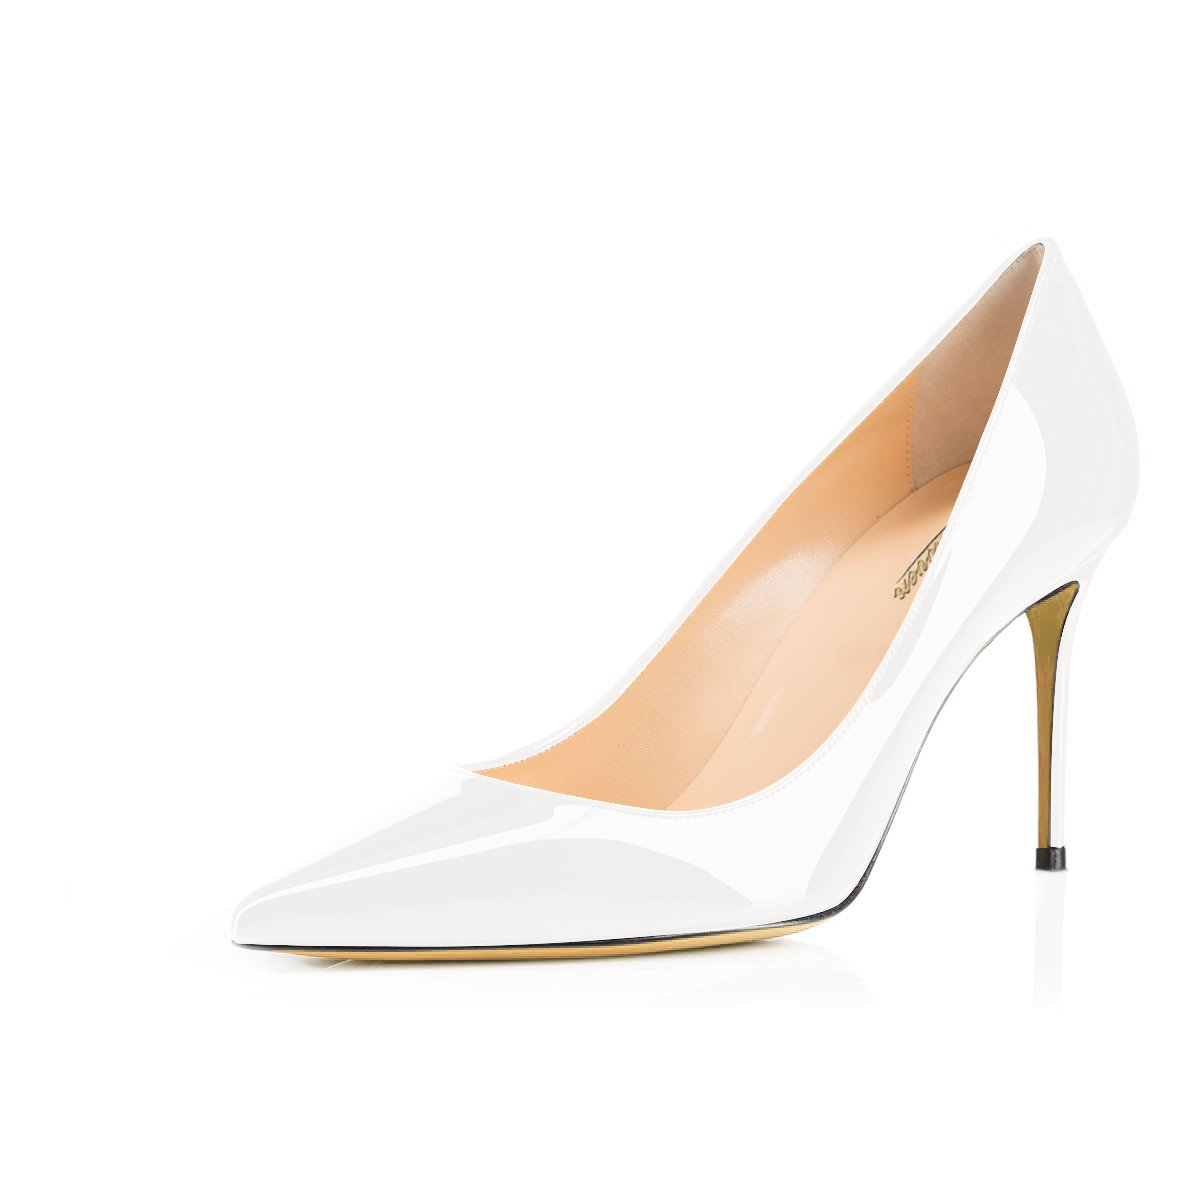 b89e50a70c660 MODEMOVEN Women's White Pointed Toe Pumps Slip-on Office Business High  Heels Sexy Stiletto Shoes 7.5 M US